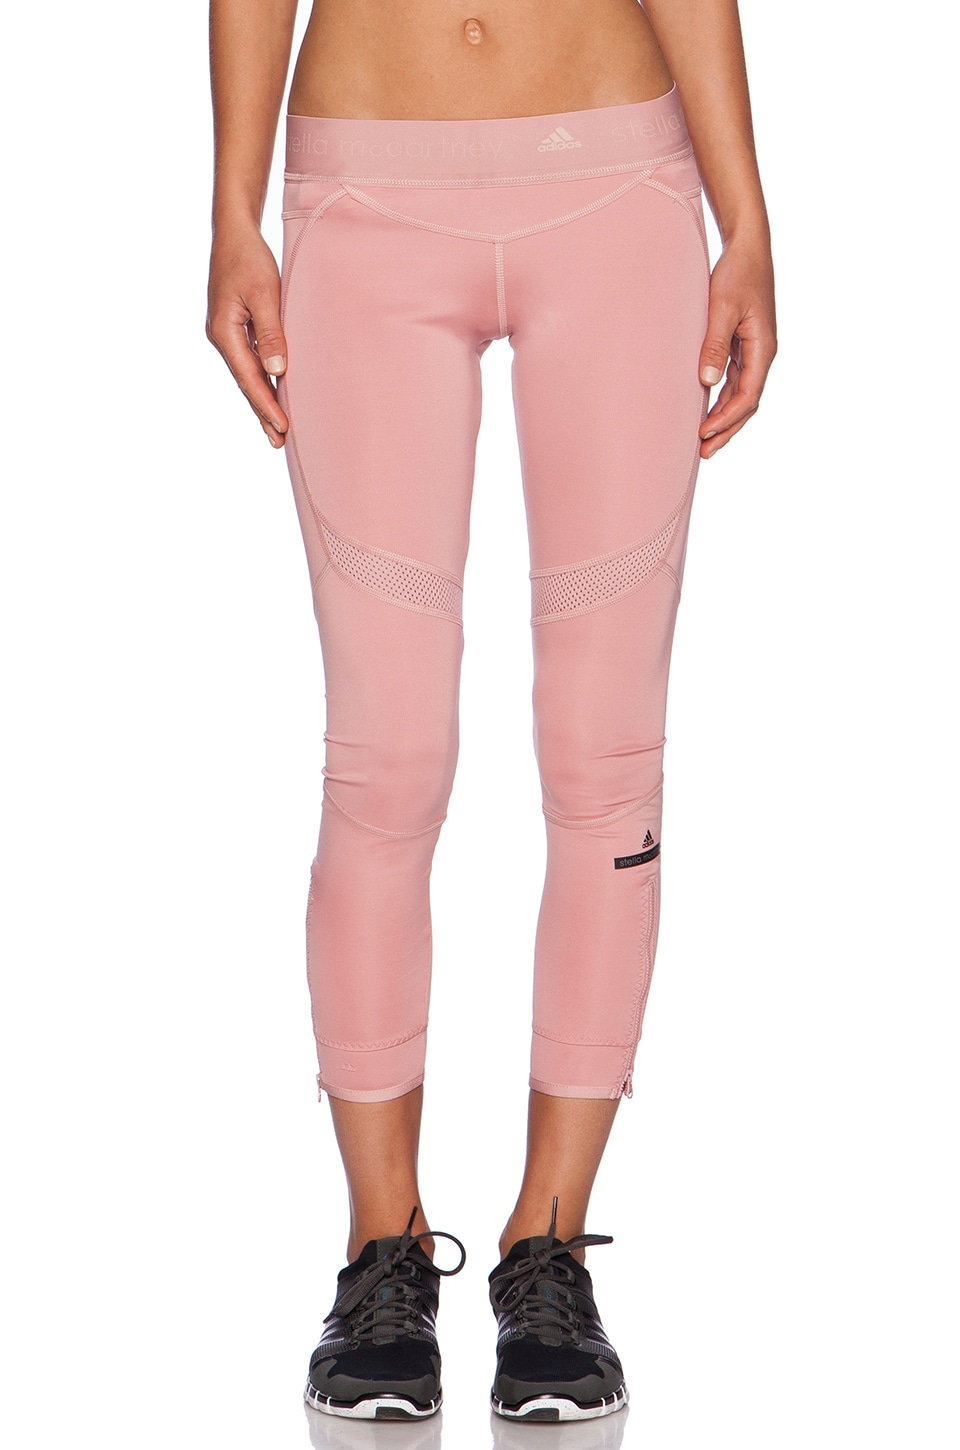 adidas by Stella McCartney Running 7/8 Tight in Band Aid Pink